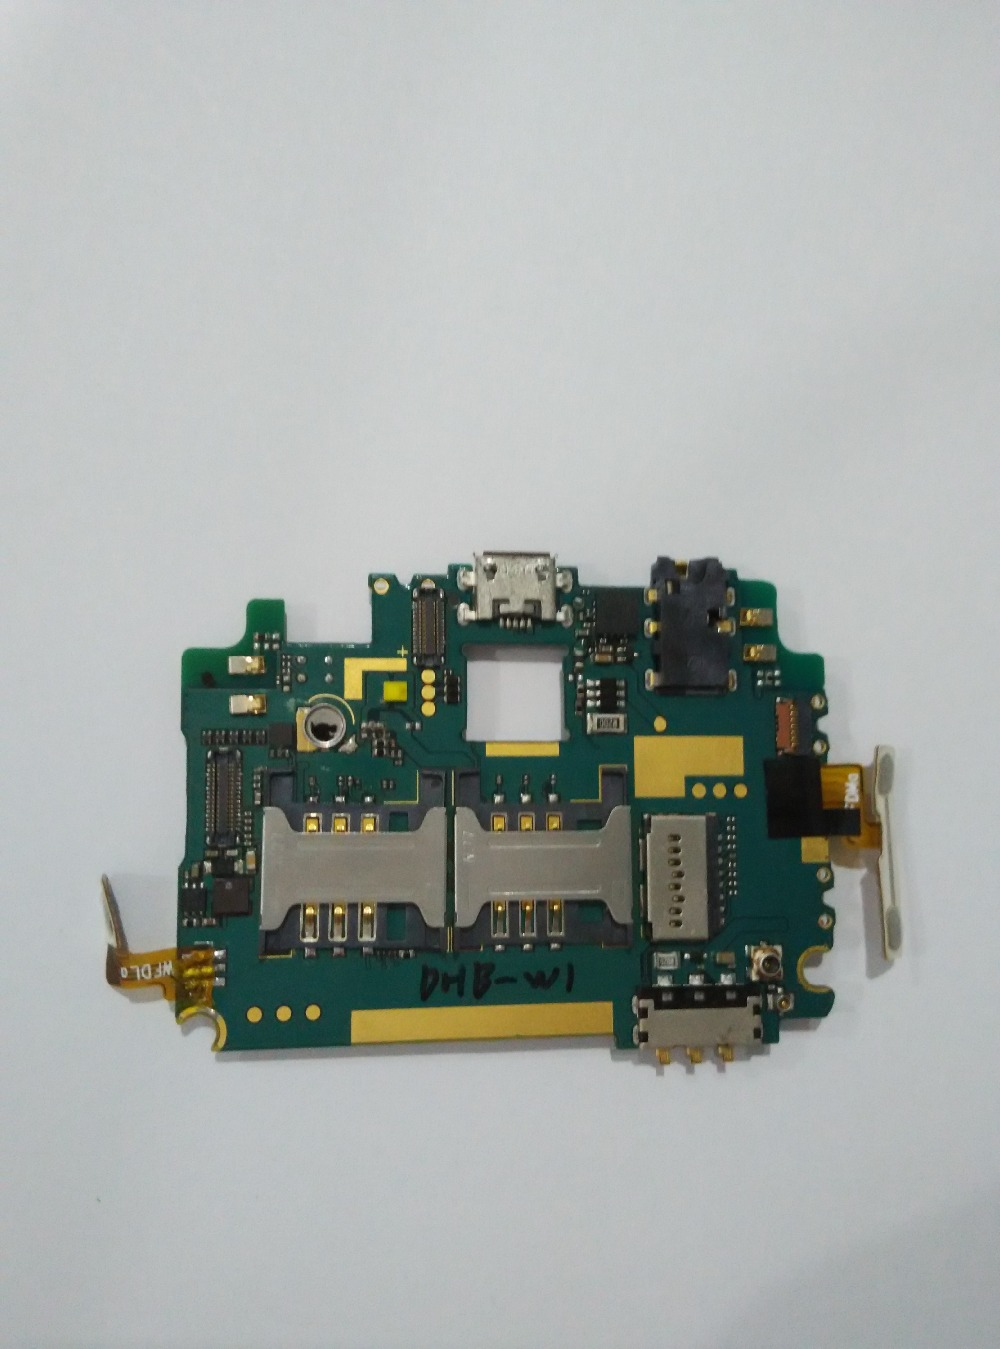 Used+ mainboard motherboard for Newman NM890 5.0inch 3G WCDMA Android 4.1.2 Mtk6589 Quad Core Rom 1GB+Rom 4GB 1280*720PUsed+ mainboard motherboard for Newman NM890 5.0inch 3G WCDMA Android 4.1.2 Mtk6589 Quad Core Rom 1GB+Rom 4GB 1280*720P